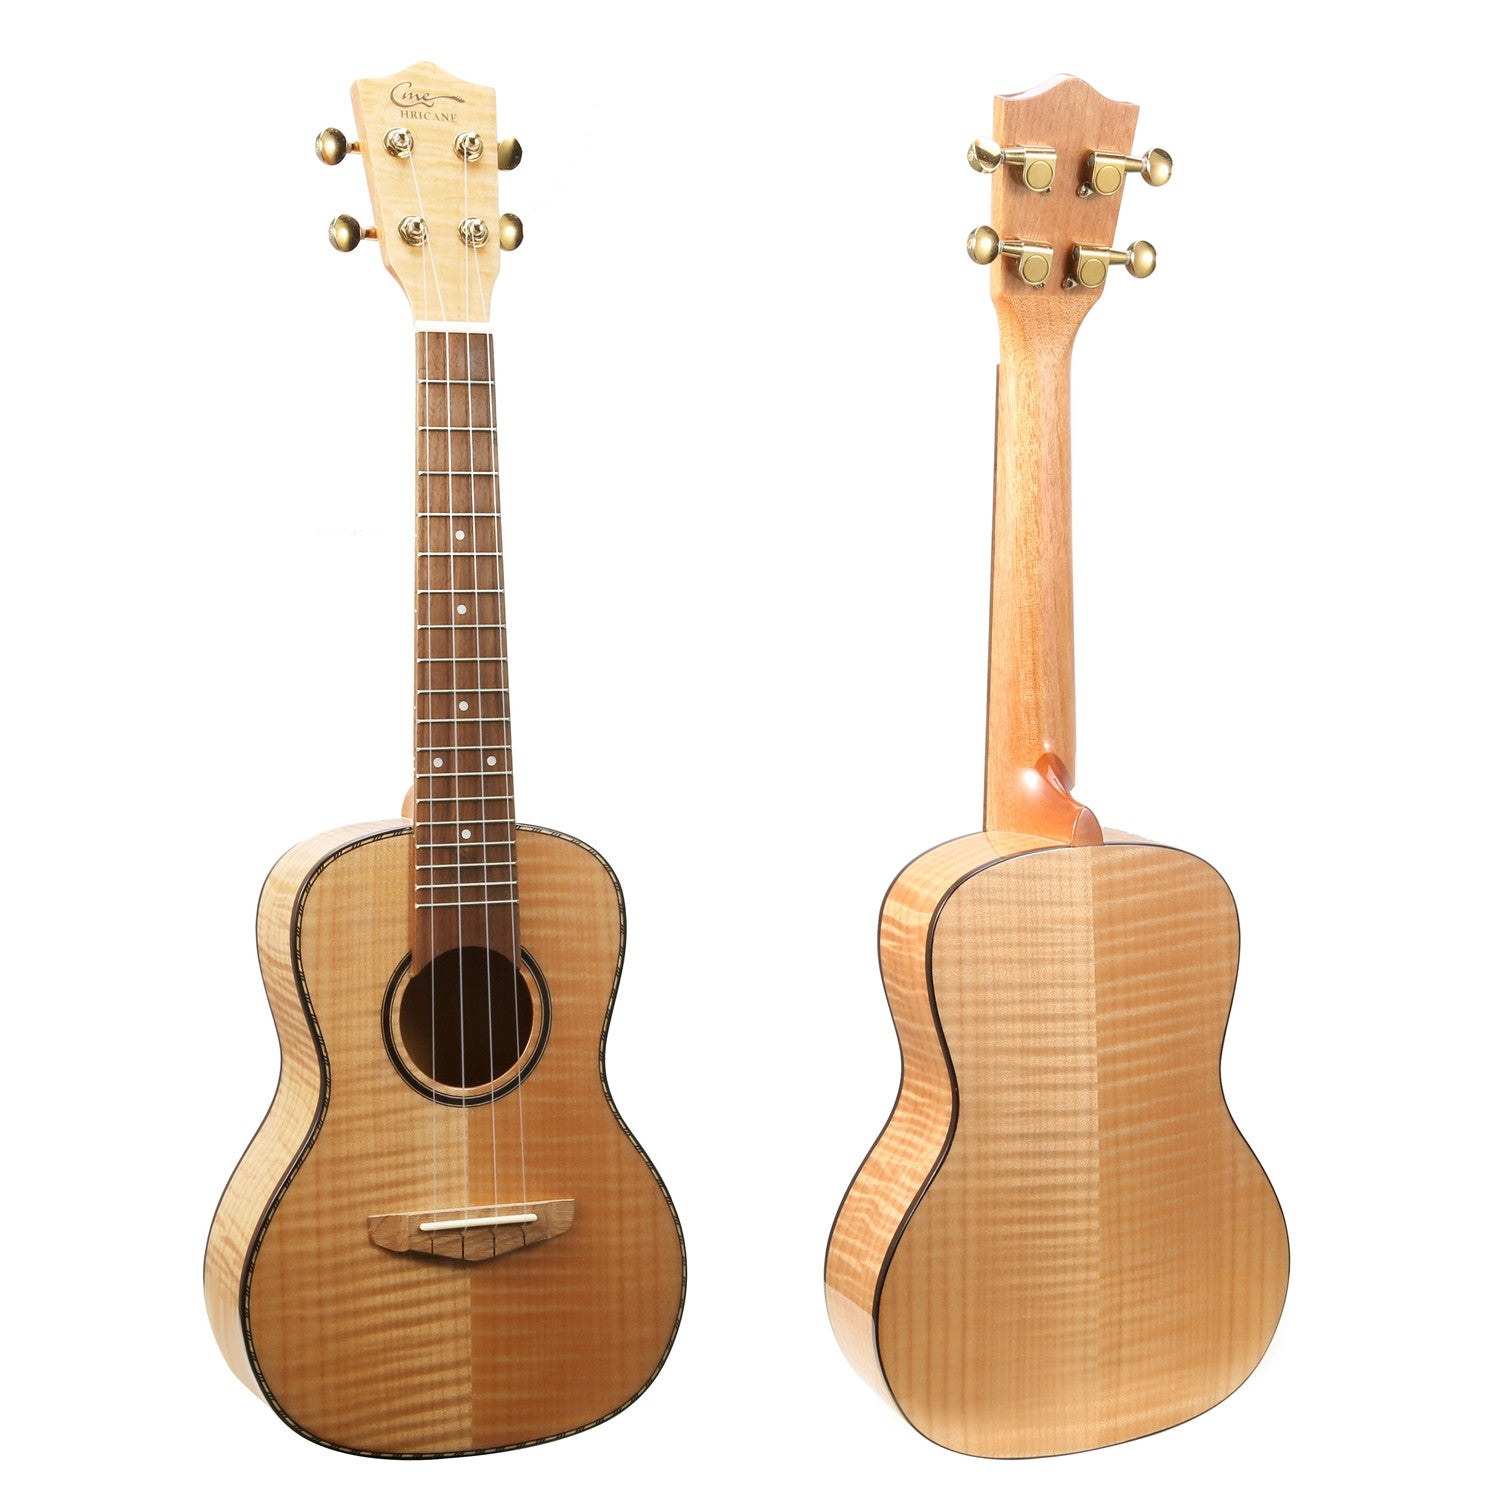 23 Inch Tiger Veins Maple Hawaii Concert Ukulele